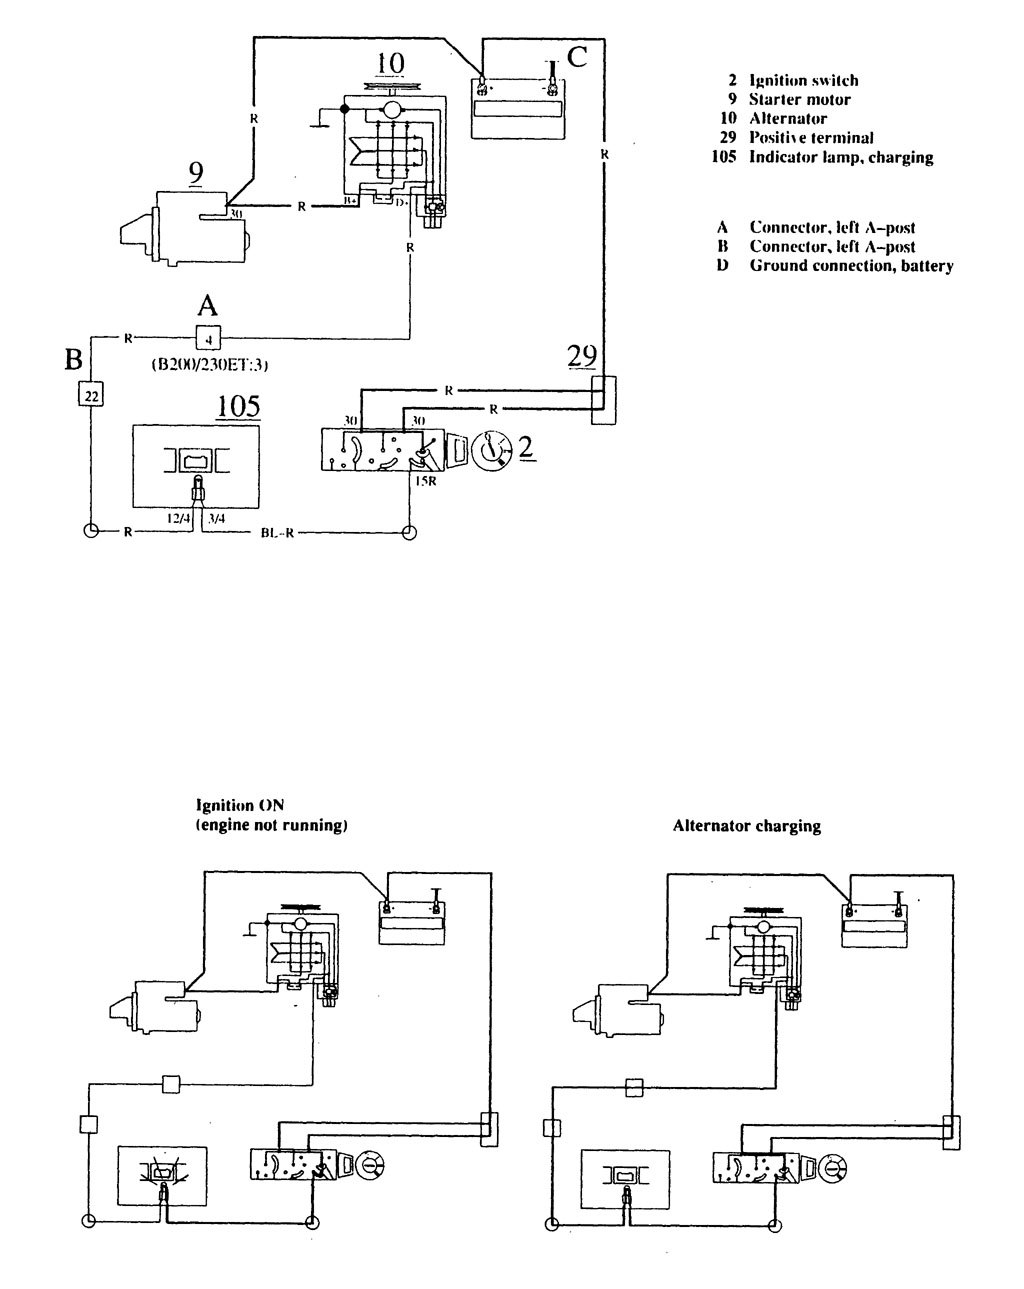 car charging system wiring diagram ademco vista 10p volvo 740 1989 1990 diagrams